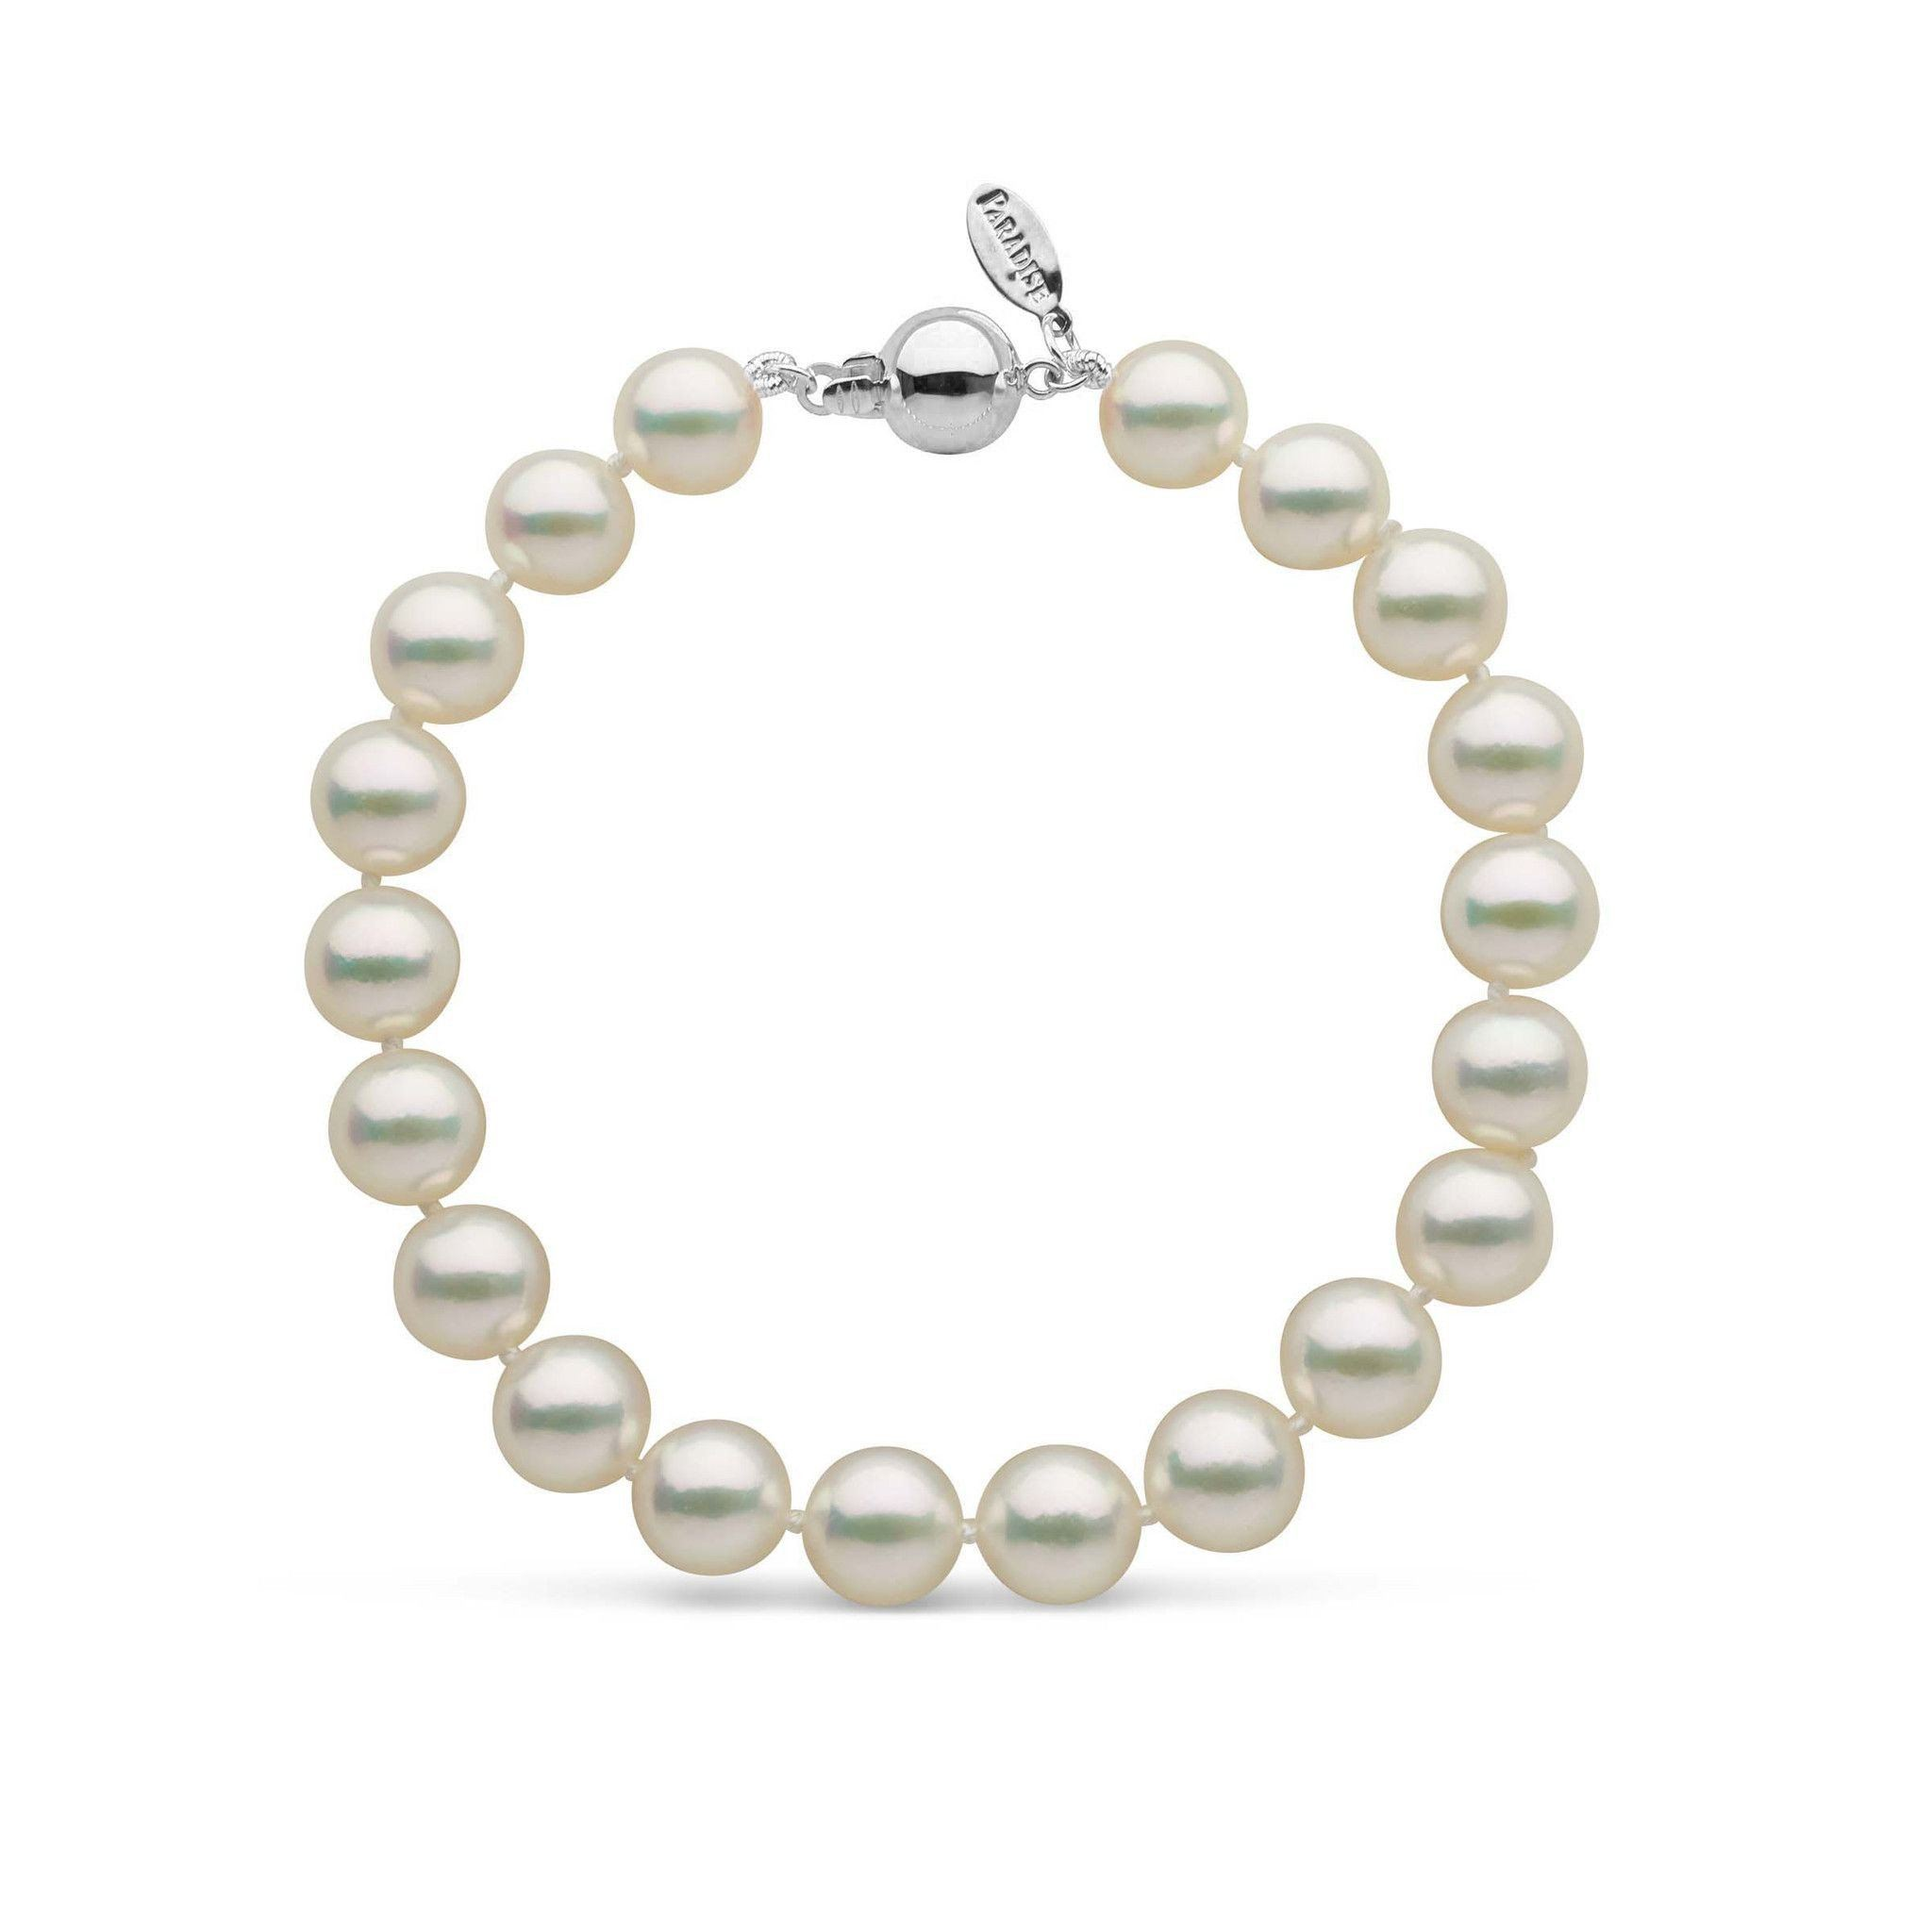 8.0-8.5 mm Natural White Hanadama Akoya Pearl Bracelet